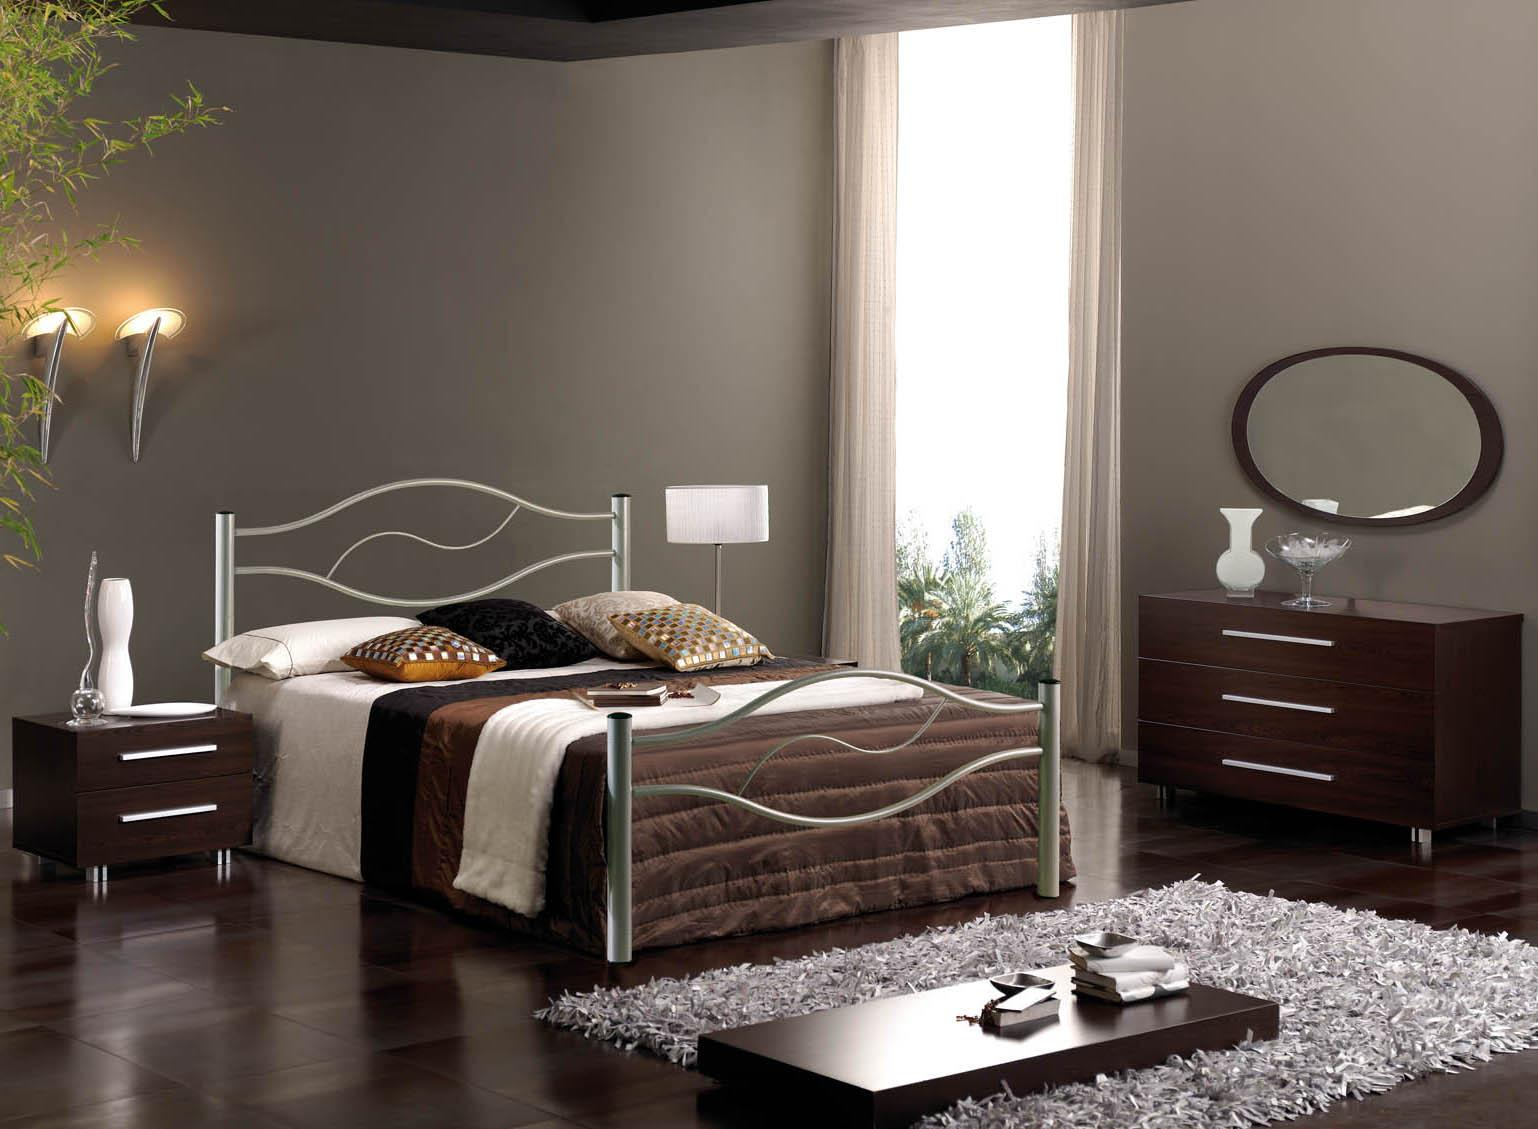 Furniture Ideas For Small Bedrooms Small Bedroom Furniture Arrangement